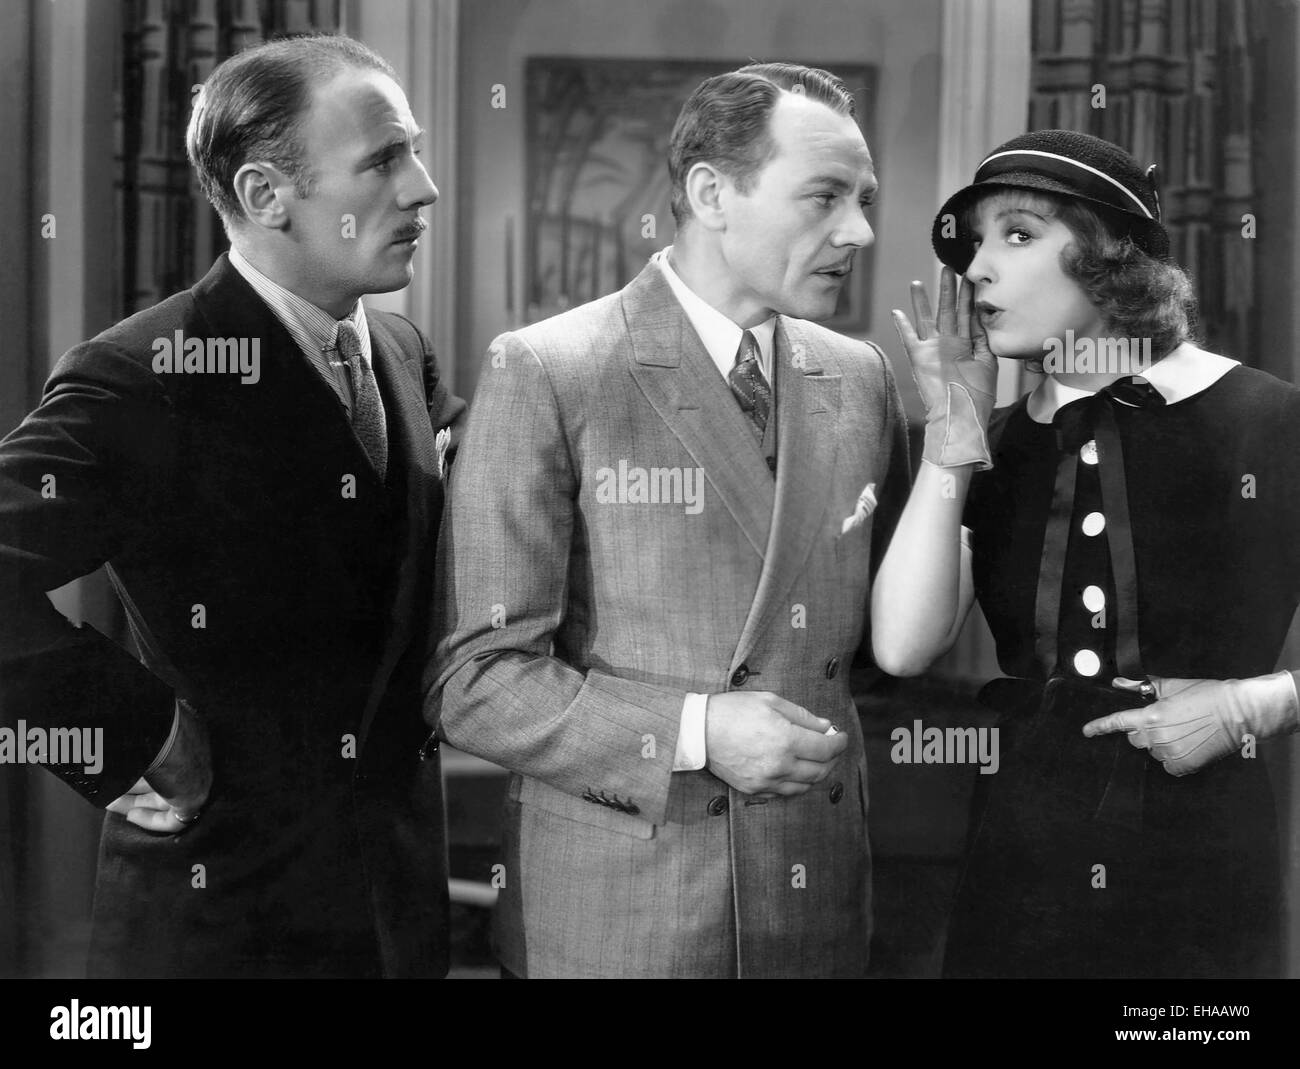 Roland Young, Charles Ruggles, Lili Damita, on-set of the Film 'This is the Night', 1932 - Stock Image